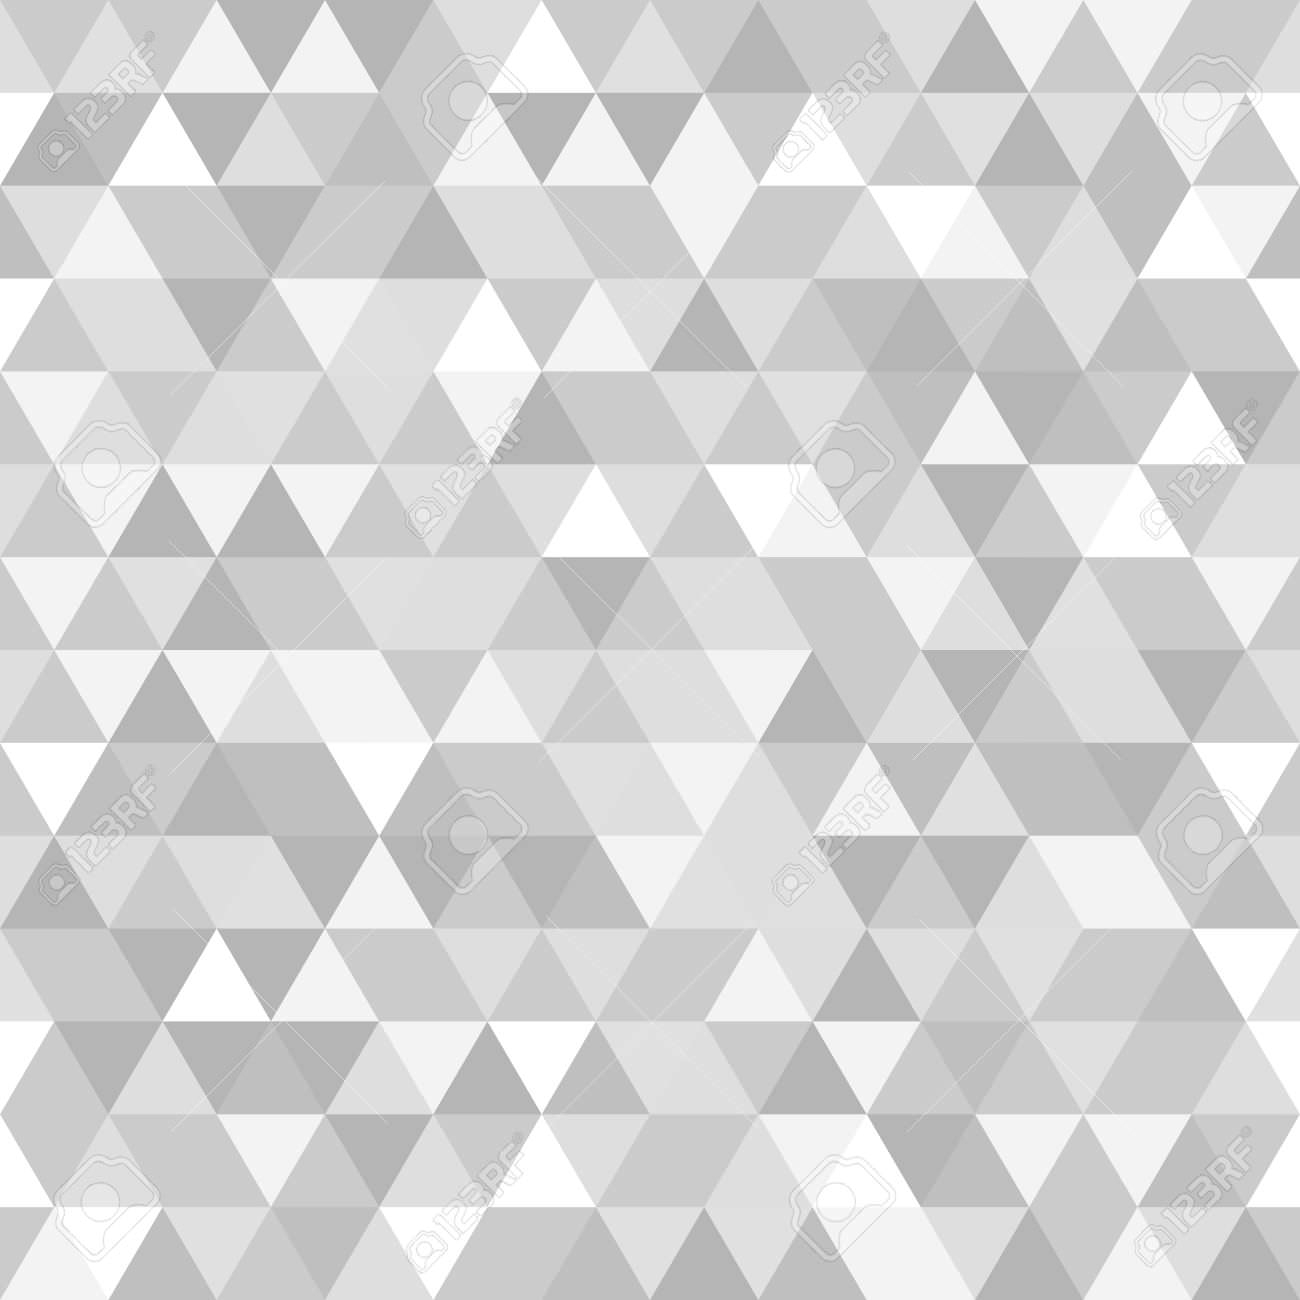 Grey and white background images for Grey and white wallpaper